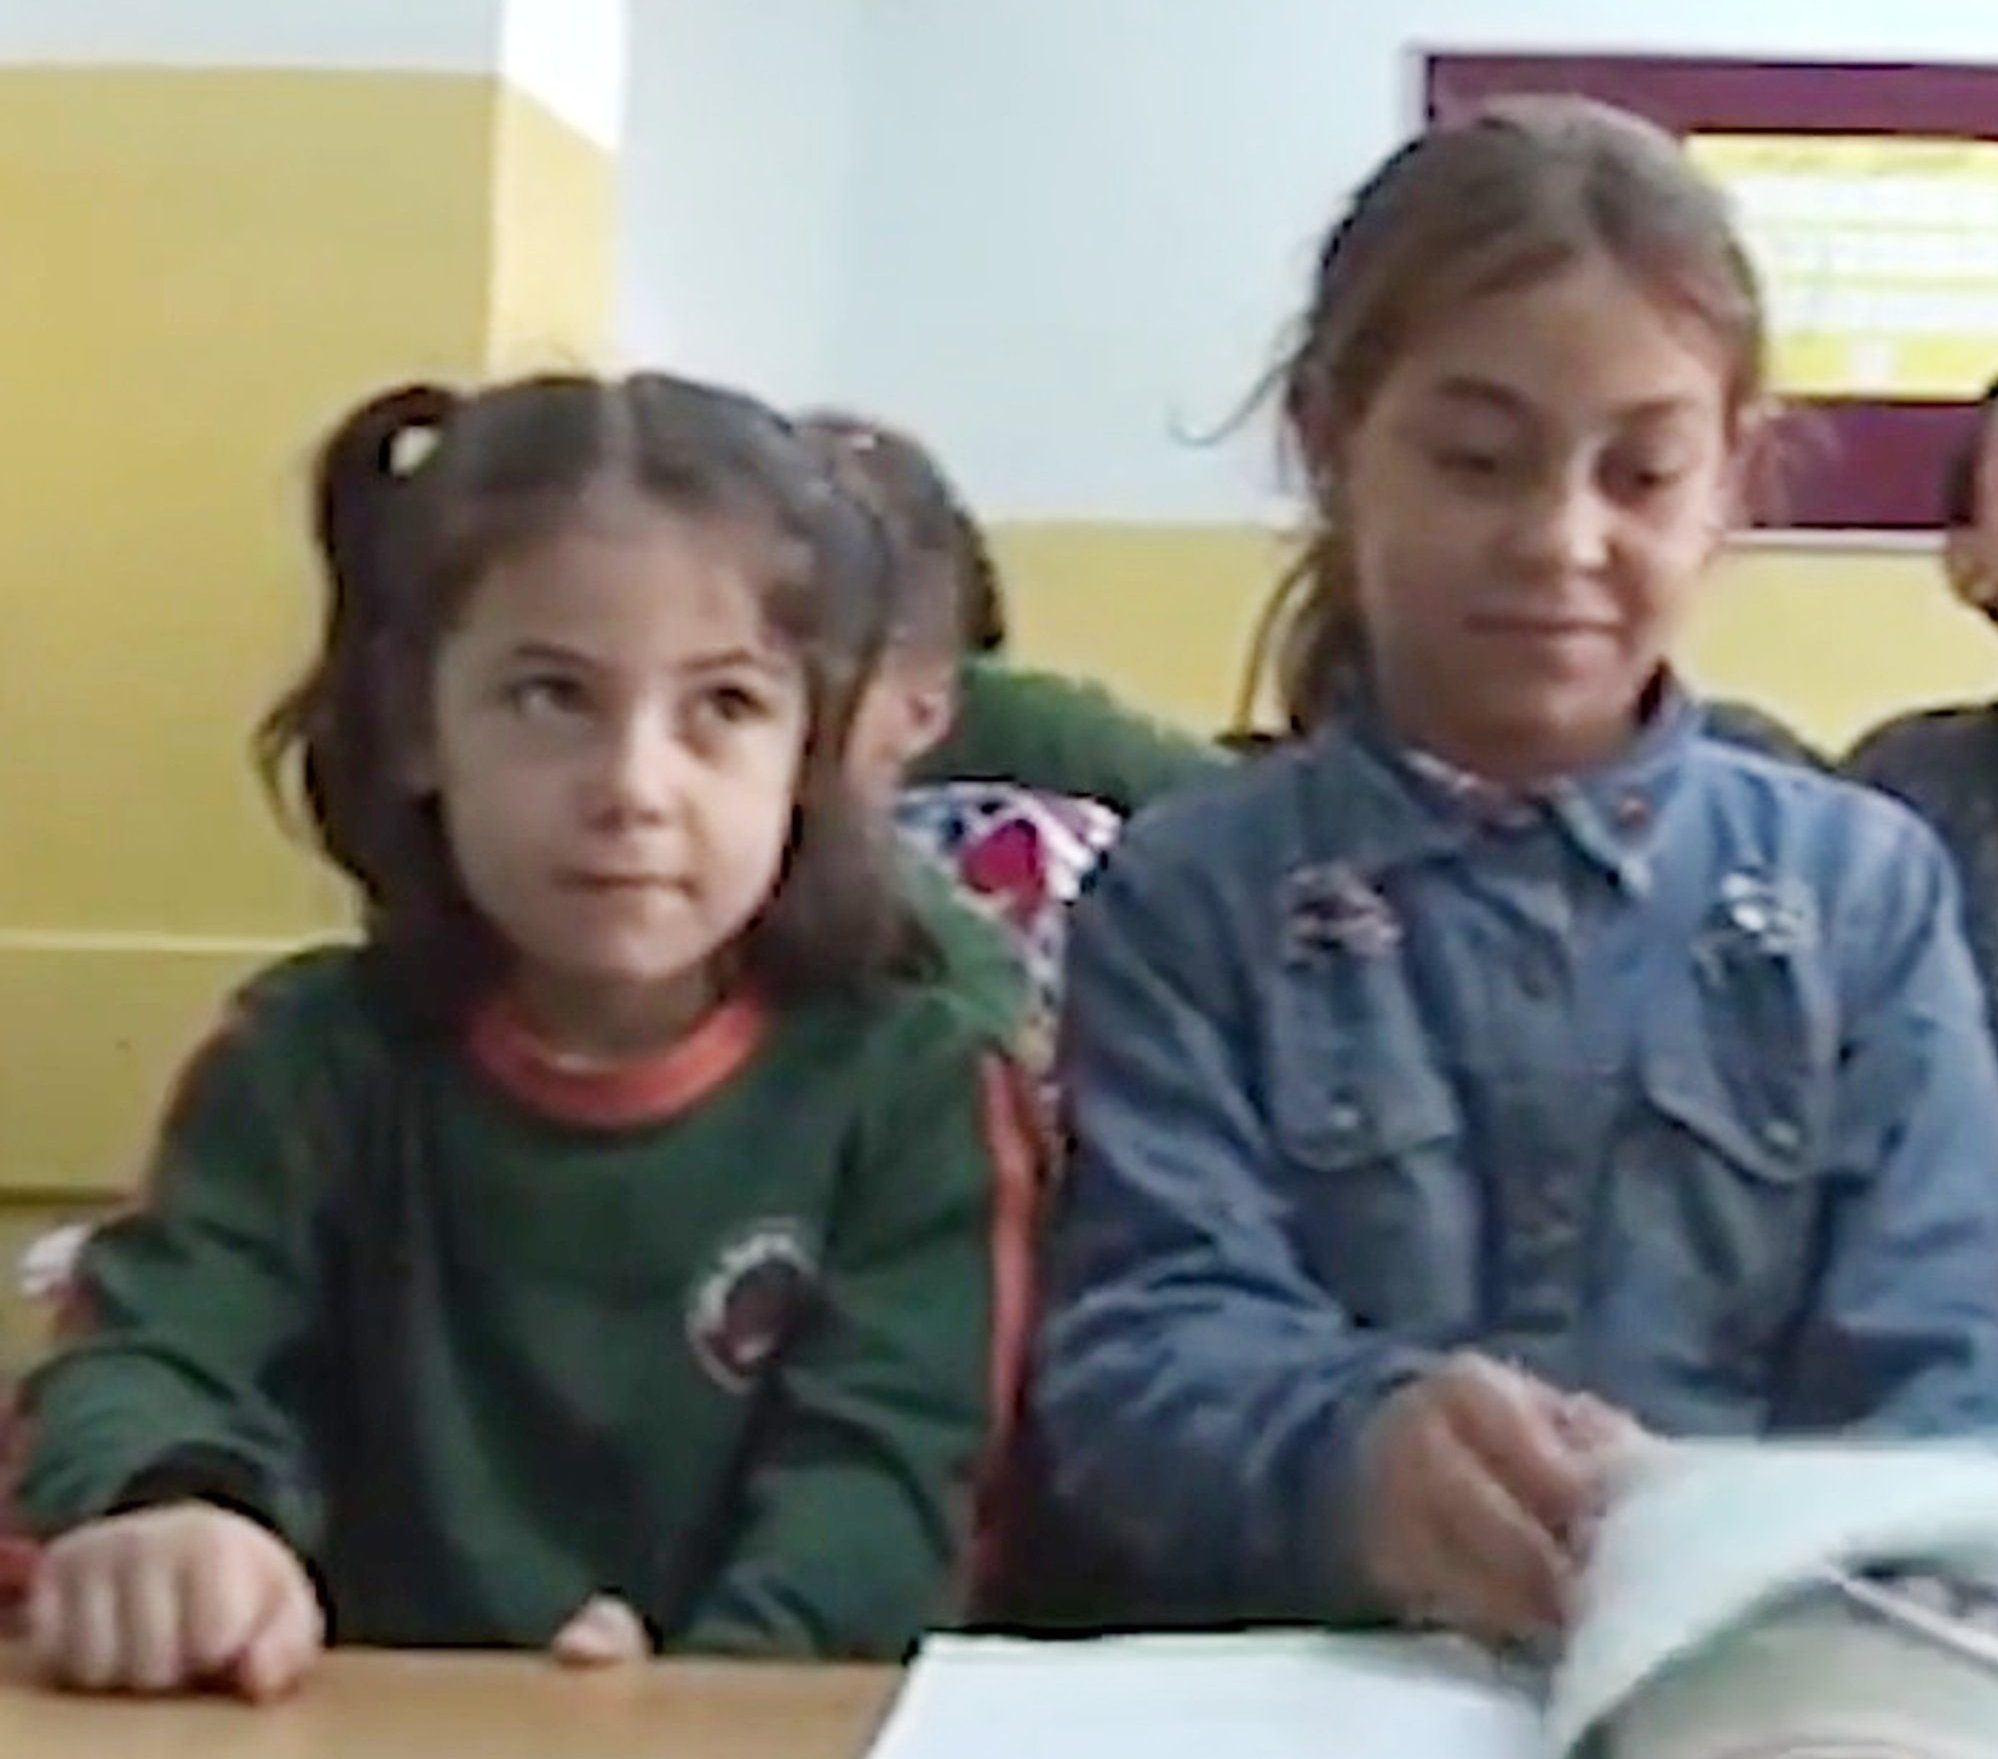 "Pic shows: Halime attending classes. This is the moment an 11-year-old Syrian refugee was filmed studying in a pile of rubbish next to several bins and the footage led to a place for her in a Turkish school. The incident took place in the Arnavutkoy area of Istanbul on the European side of the western Turkish major city. Little Halime Cuma???s life changed when video footage of her diligently writing into a notebook while sitting among rubbish was uploaded to social media and caused outrage. Turkish education authorities stepped in and found the young refugee a place at a school. The 11-year-old started her education on 26th September. According to local media, Halime arrived in Turkey from Syria with her mum and dad about one year ago. She lives with her parents and six brothers and sisters in Arnavutkoy and is the eldest child. Reports said that only the youngest child Hamide has been attending school before her sister was filmed studying in squalor. Council officials have confirmed that the municipality will pay for Halime???s school costs. Meanwhile, the bright 11-year-old said that she was ""excited"" she will be able to have ""access to so many books"" at the institute. Her dad Abdulrezzak Cuma told local media: ""I wanted my kids to go to school and was very upset that most of them could not. ""Halime started her new school today and I am over the moon. Now she will be able to progress in life. Next, I hope all out children will have access to public education."""